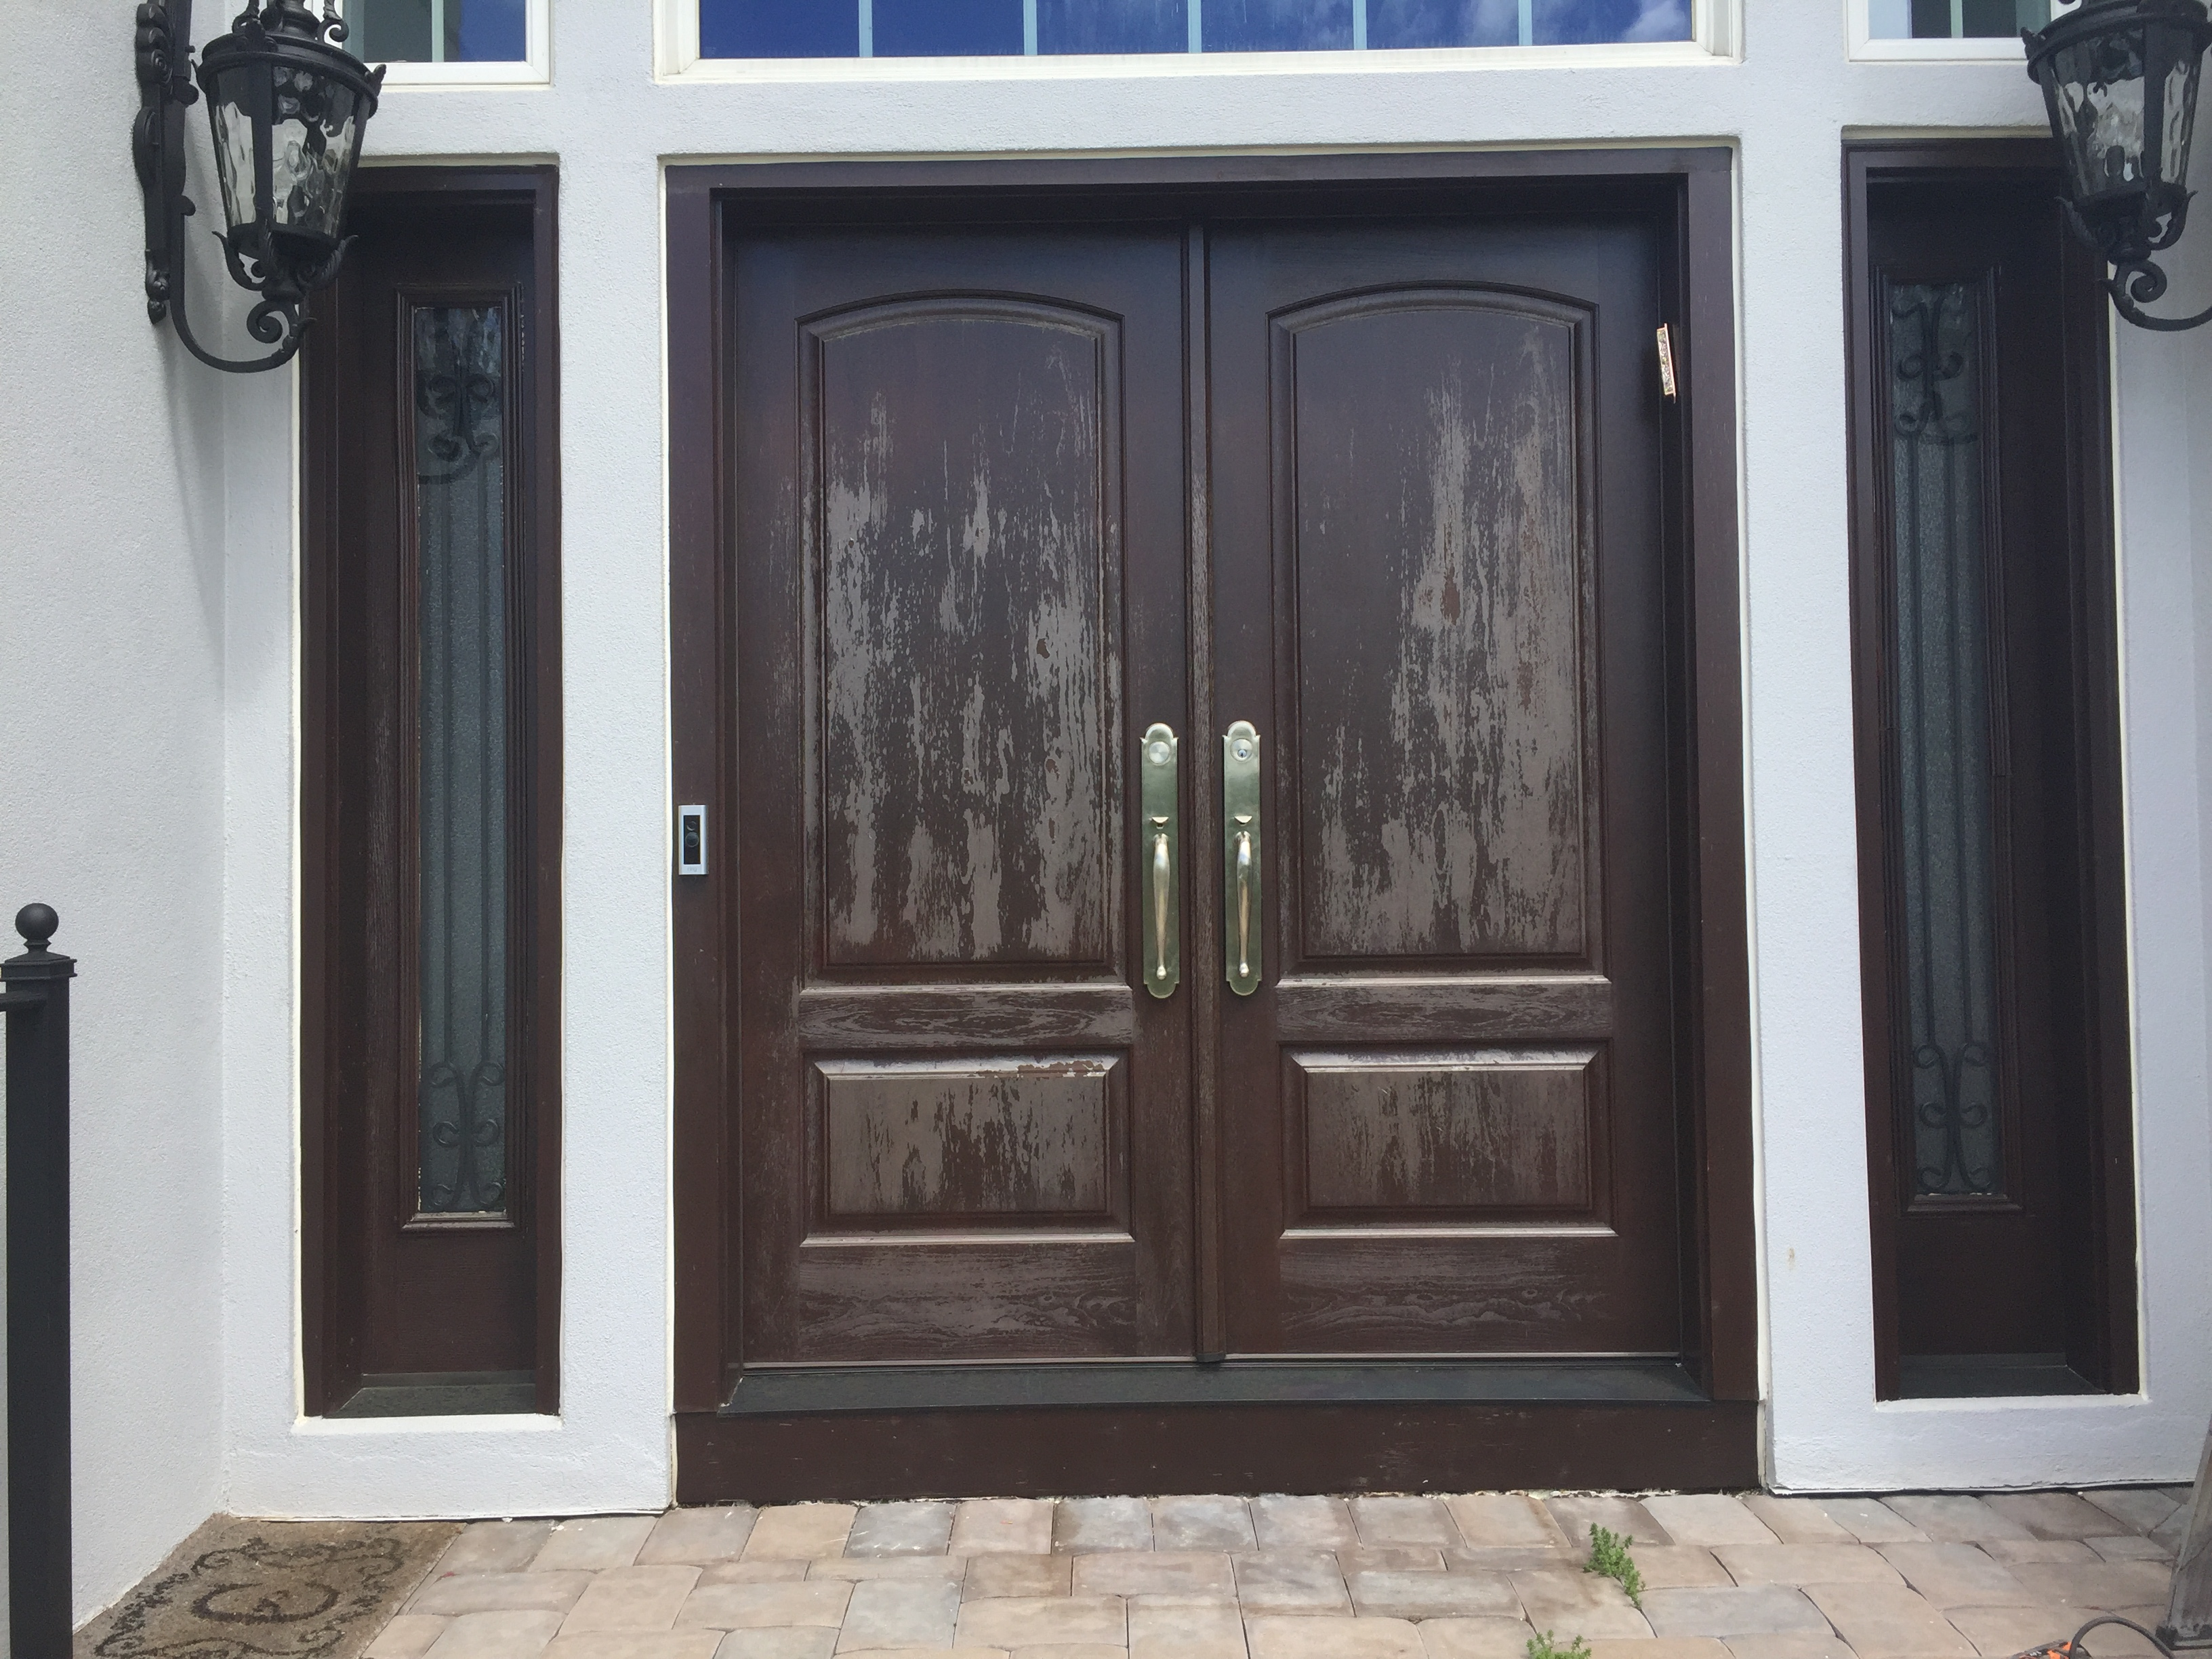 & Door Refinishing: Doors u0026 More: NJ